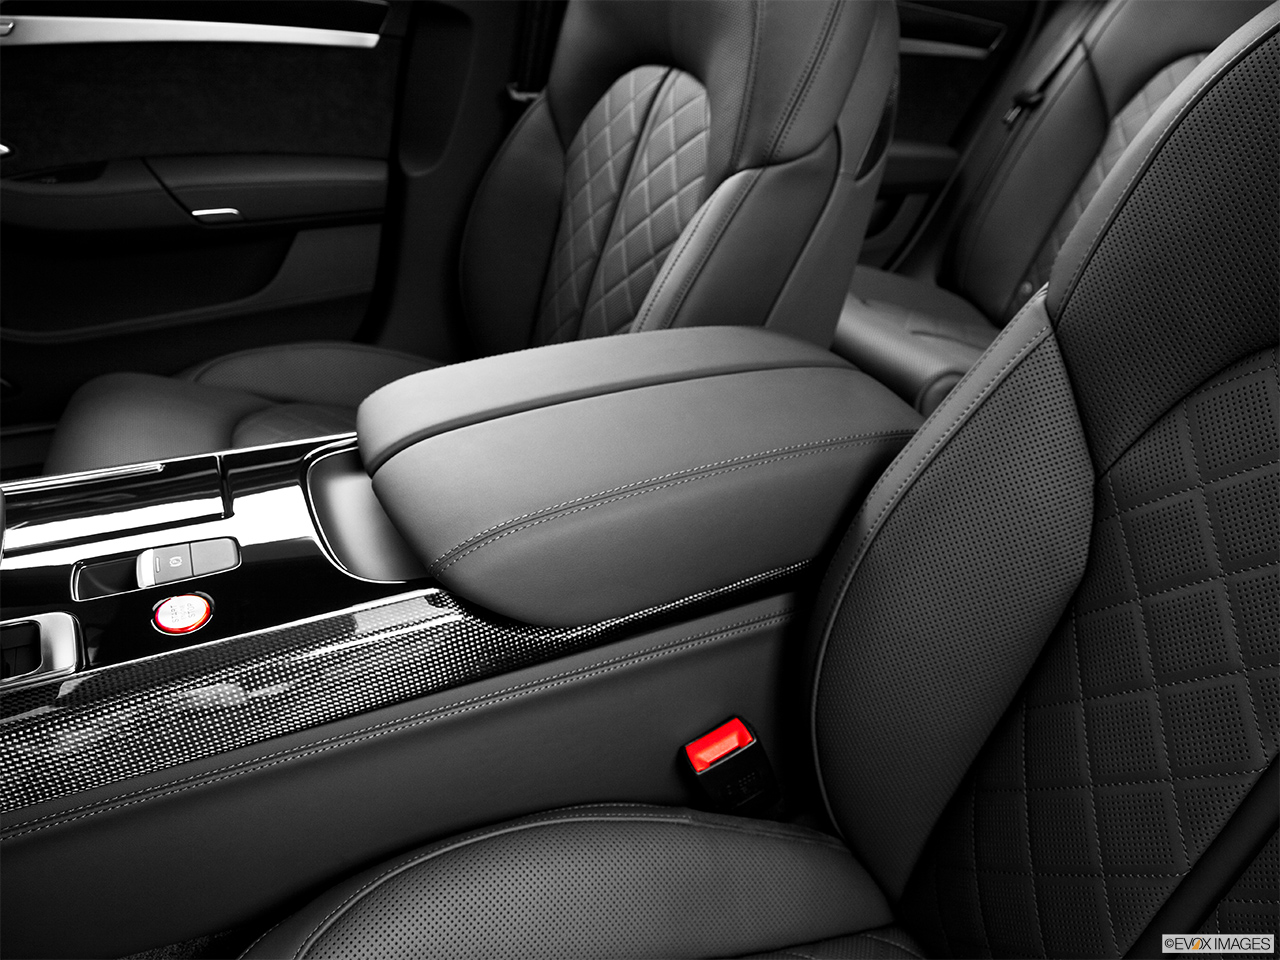 2014 Audi S8 4.0 TFSI Front center console with closed lid, from driver's side looking down